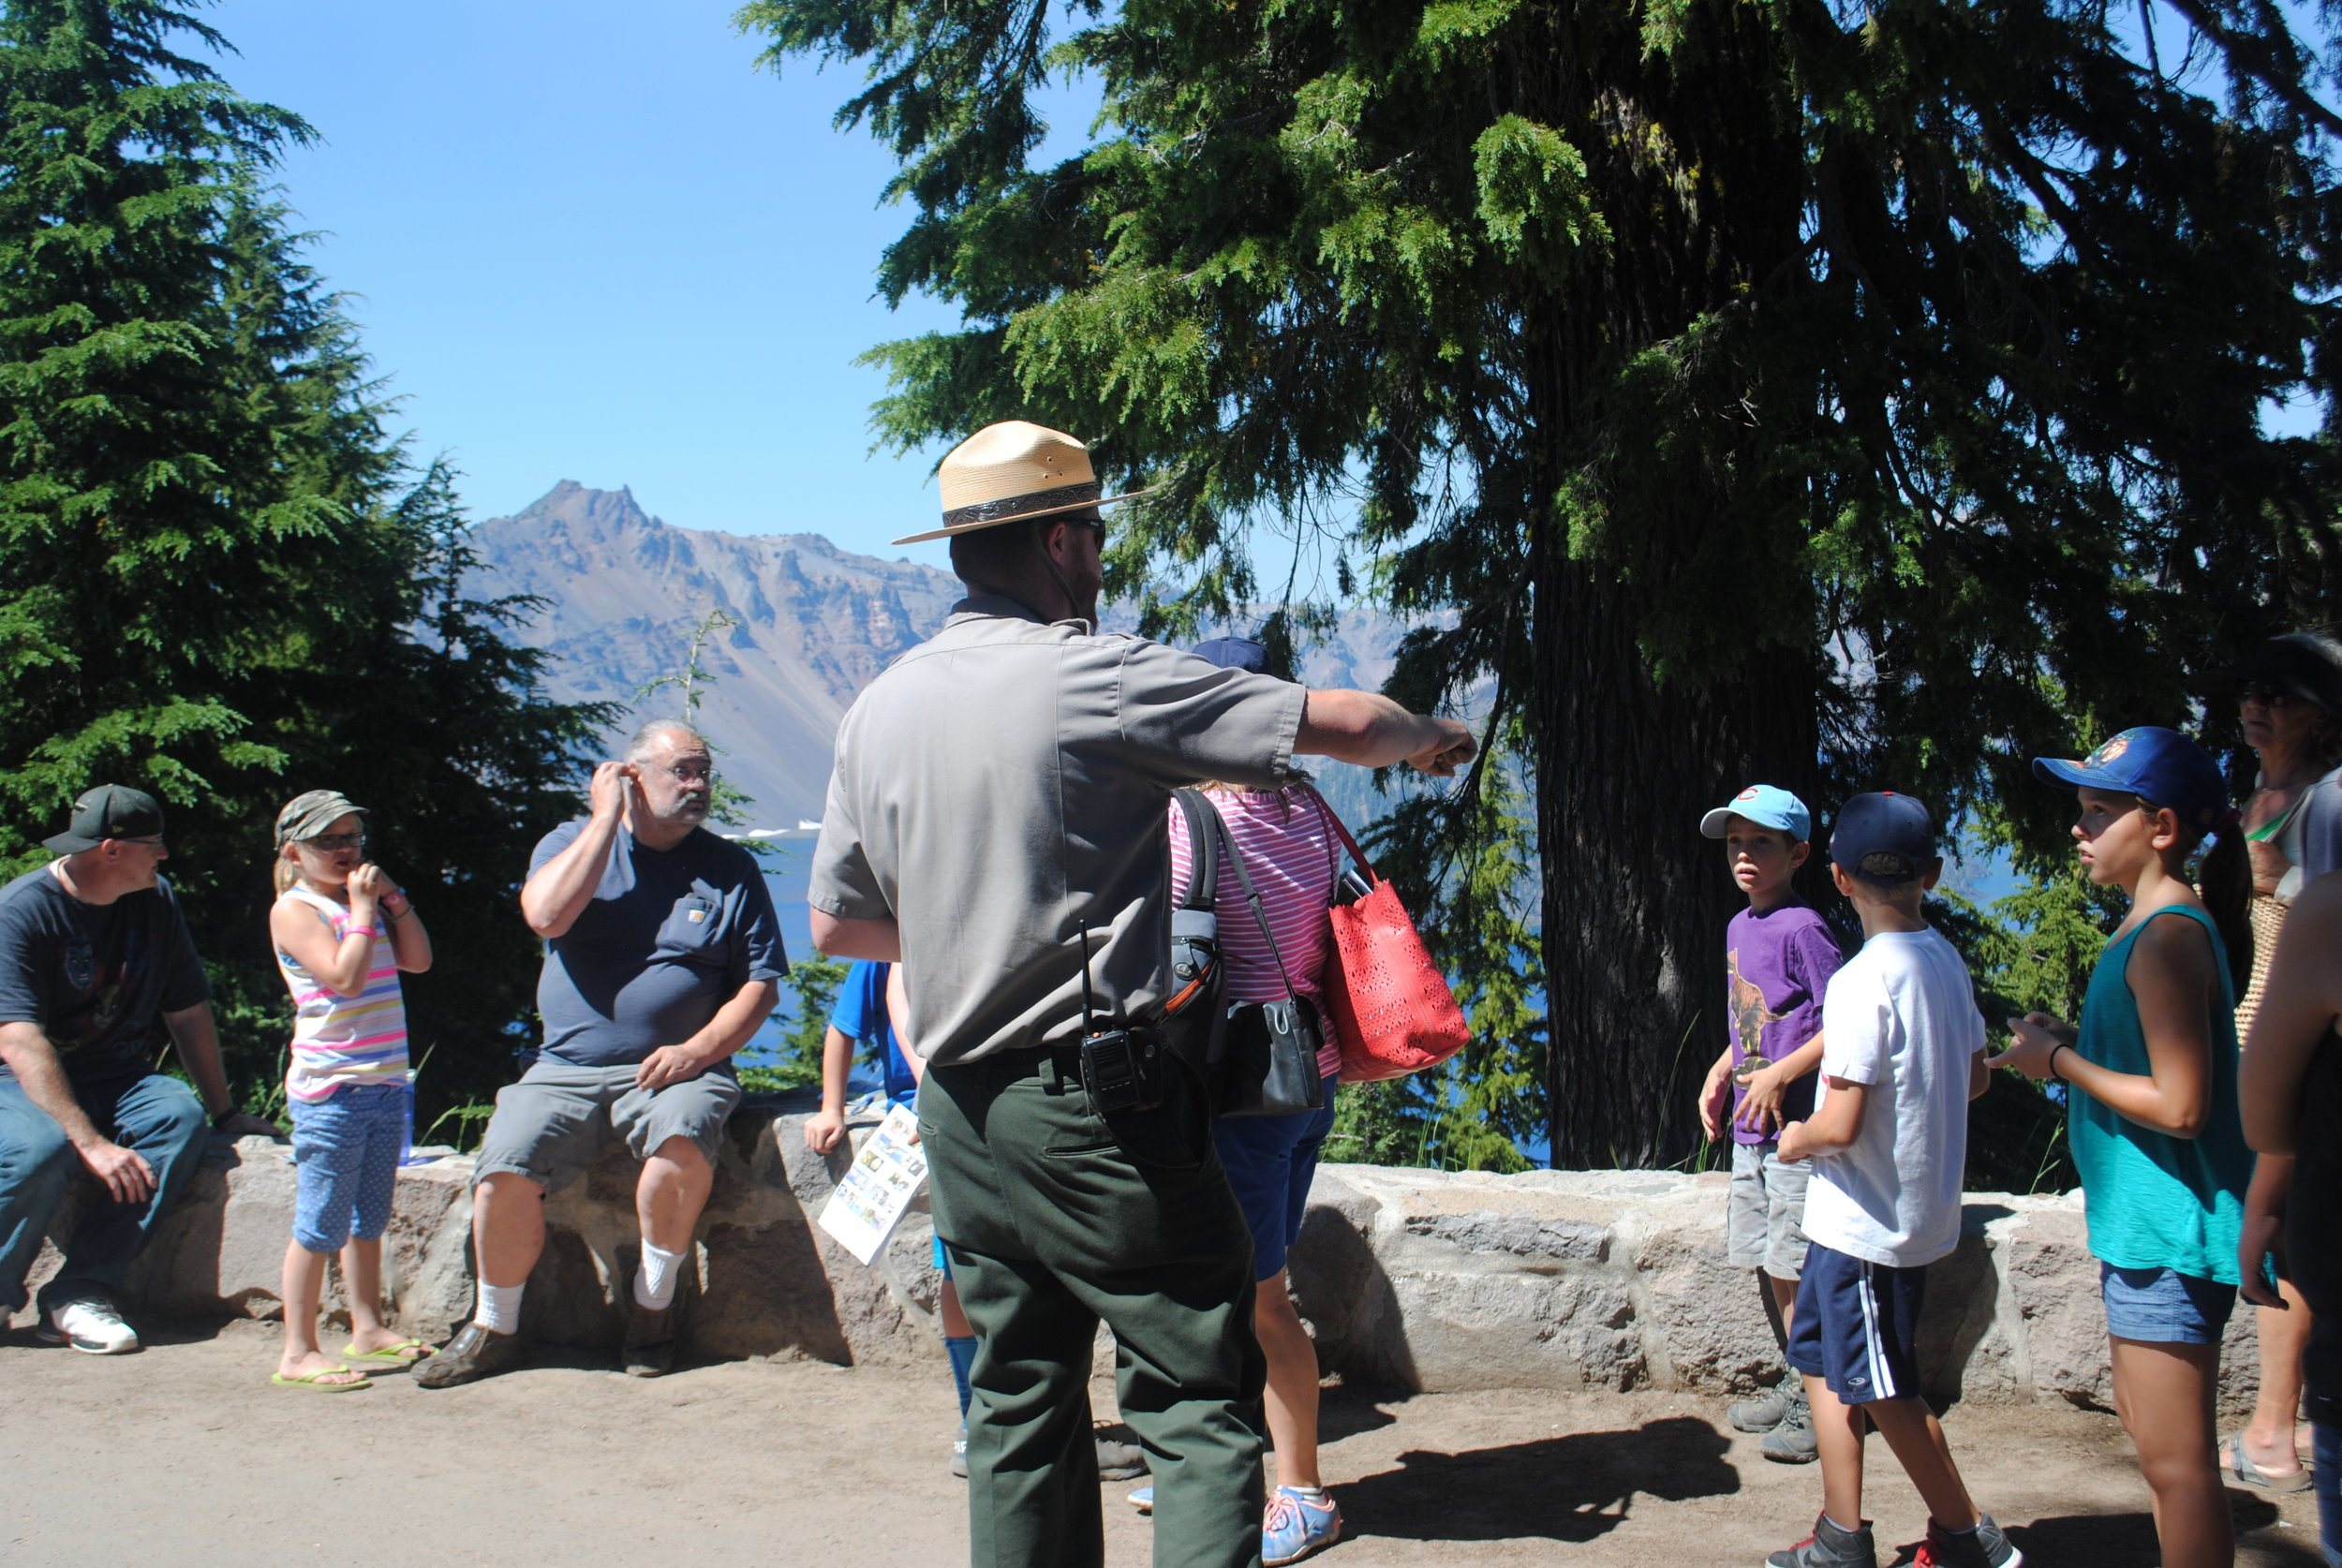 CRATER LAKE - What to do in Southern Oregon - Summer - Things to do - Kids - Hiking - Junior Rangers